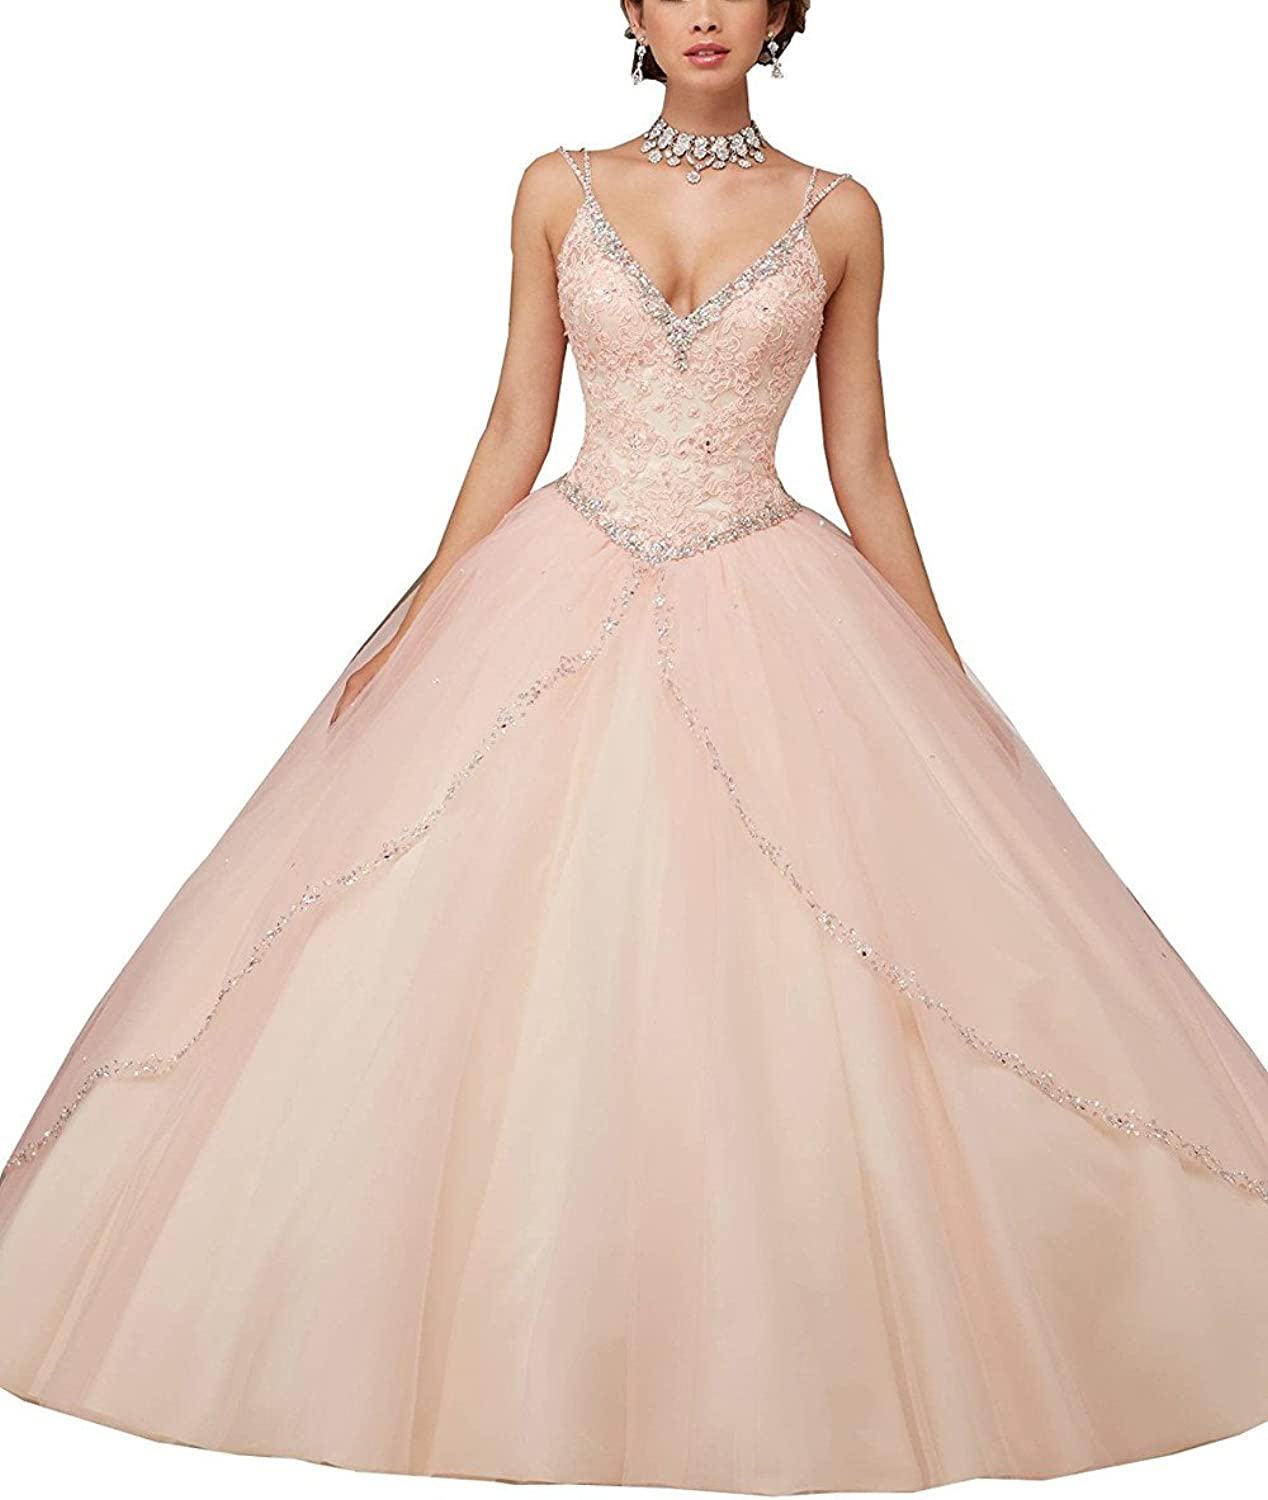 Ruisha Women Sexy Deep v Neck Spaghetti Straps Sweet 16 Ball Gowns Lace Beaded Crystal Quinceanera Dresses RS0028